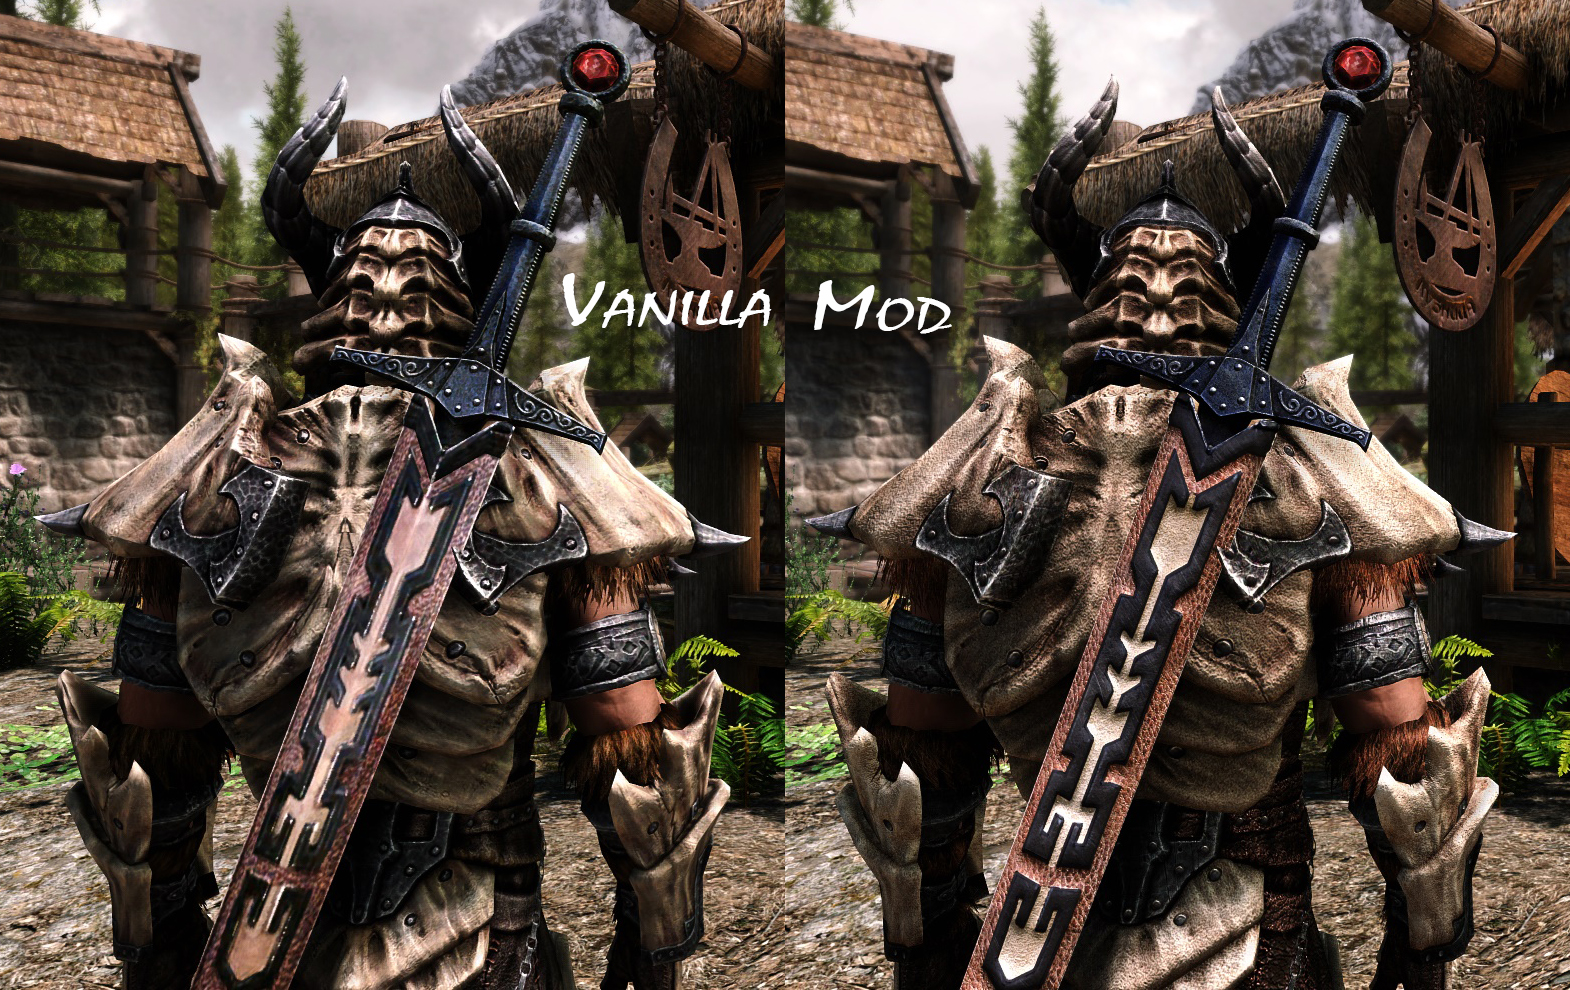 Better Textures Dragon Armor And Weapons Skyrim Special Edition Mods The best heavy armor sets in skyrim ranked. better textures dragon armor and